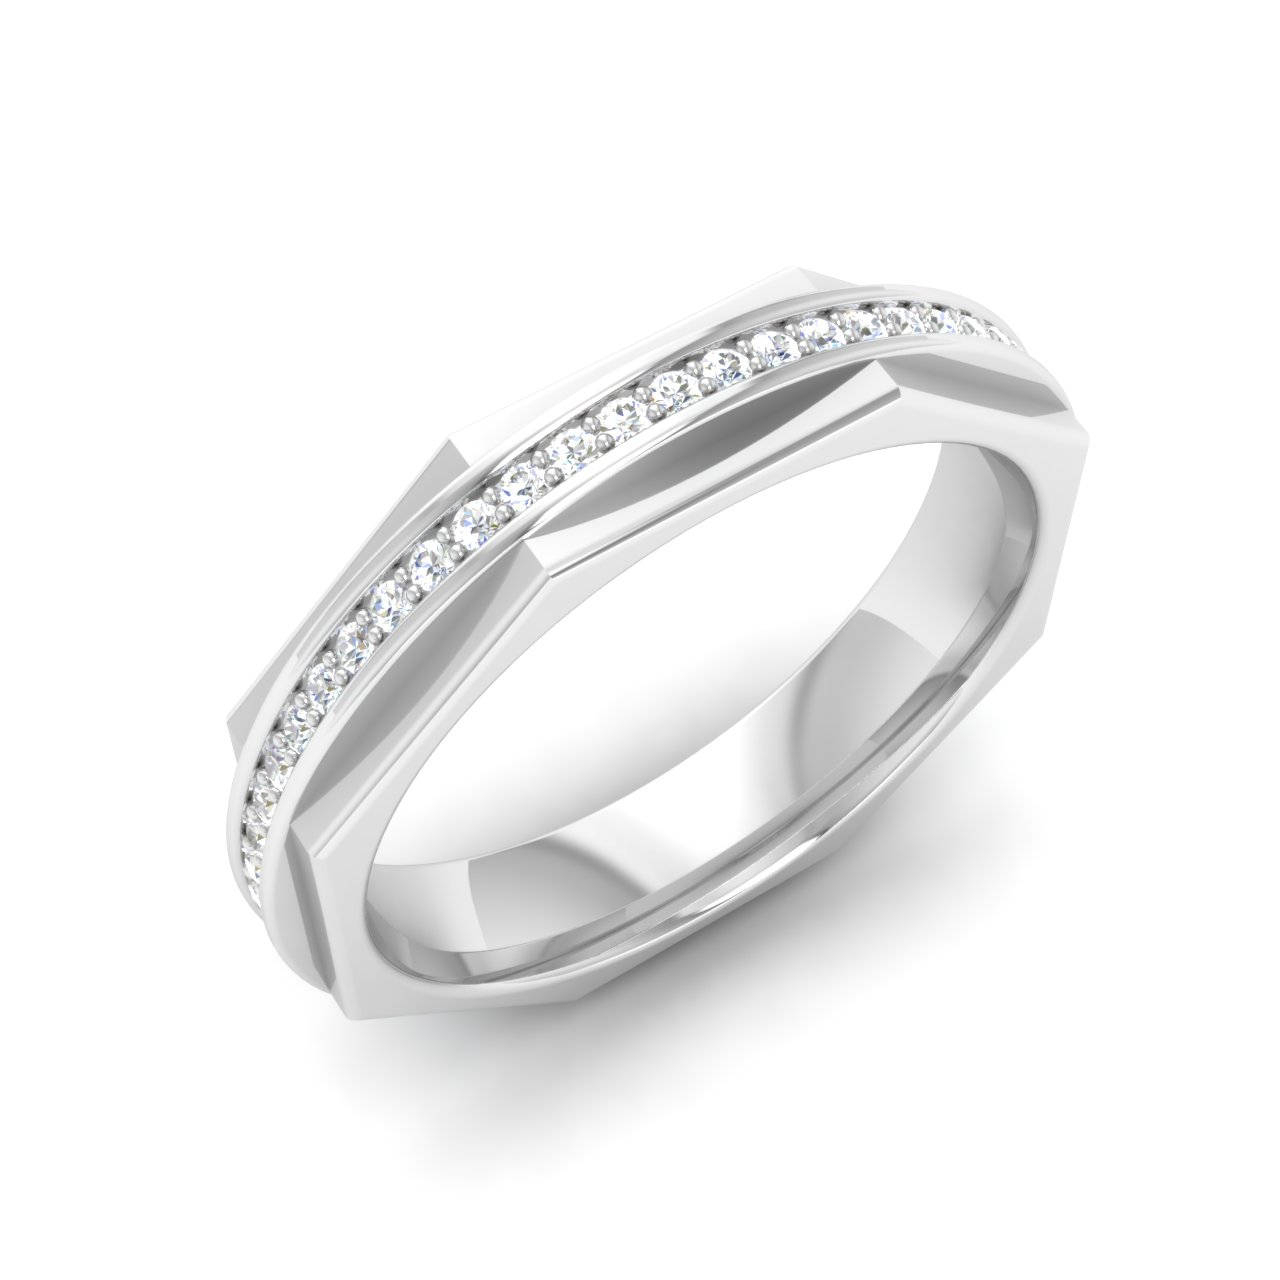 Real Round Cut Diamond Wedding Band In 14K White Gold | Diamond Eternity  Ring | Certified Diamond Anniversary Band |Rose Gold Band For Women Regarding Best And Newest Certified Diamond Anniversary Bands In Gold (View 21 of 25)